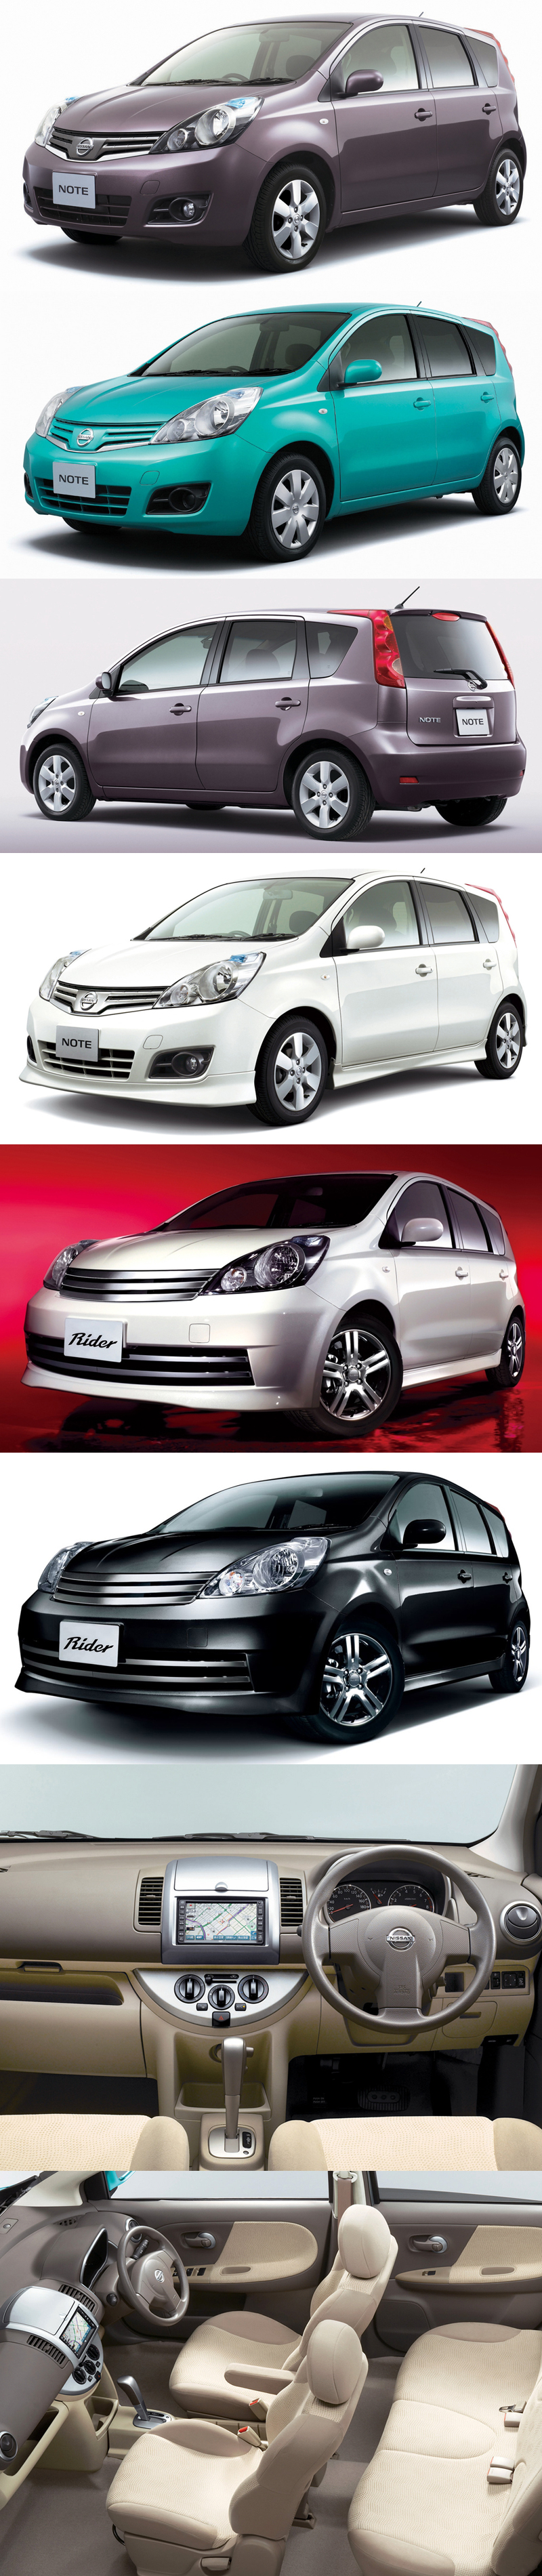 2010_Nissan_Note_Lineup